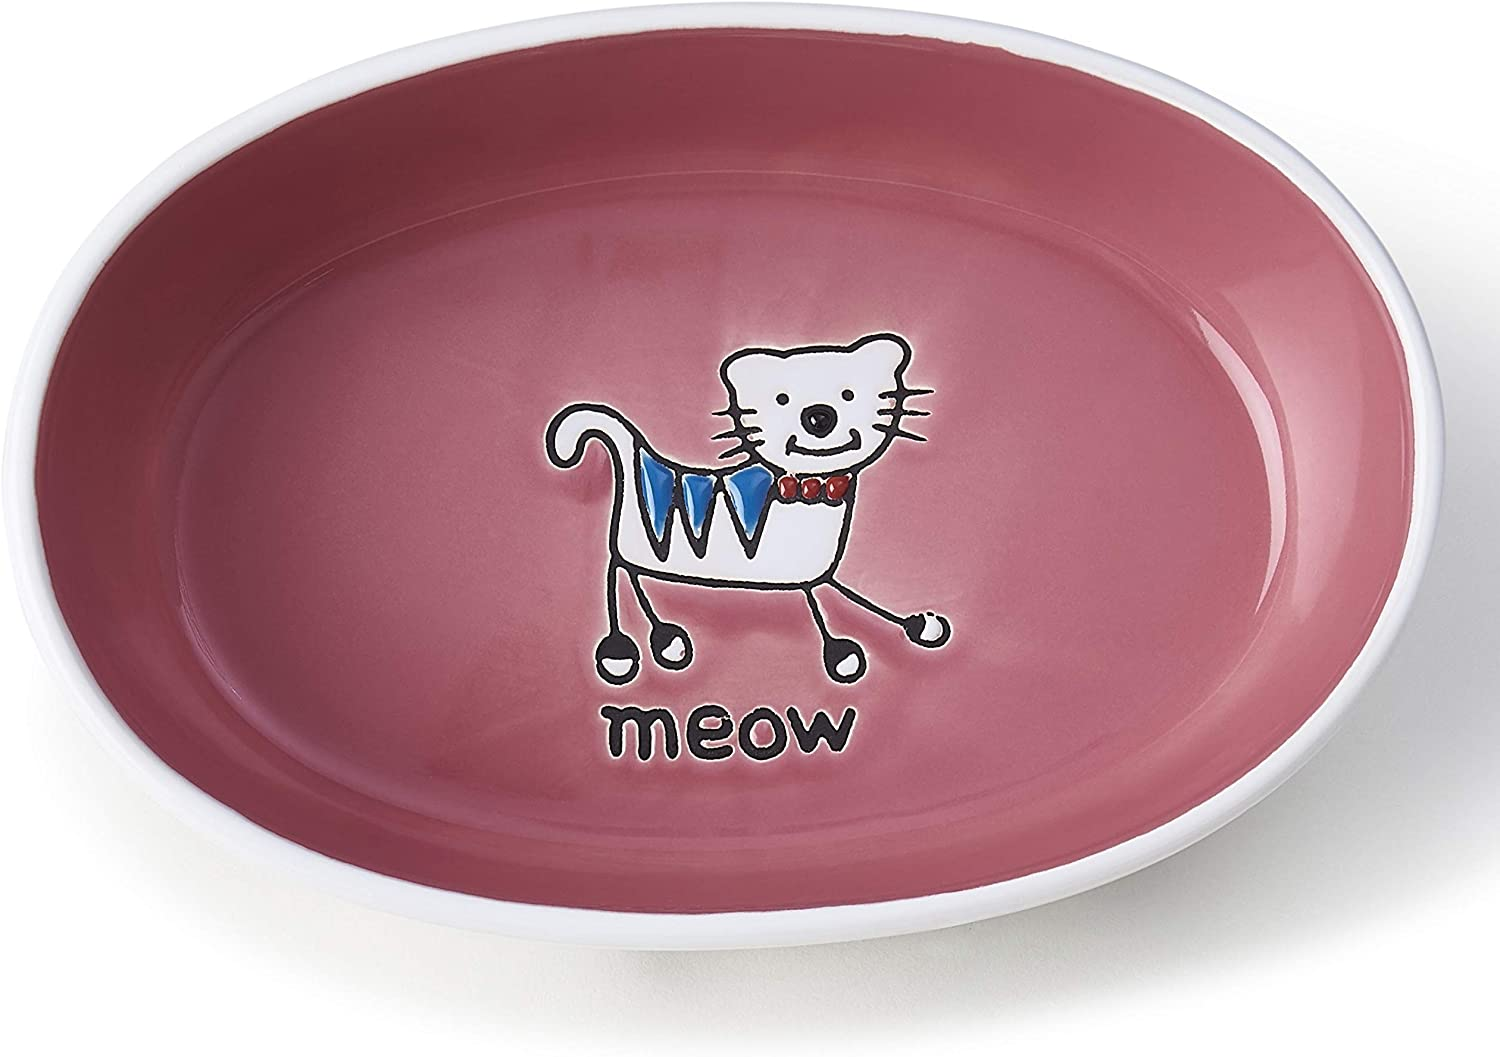 PetRageous 11023 Silly Kitty Oval Dishwasher Safe Stoneware Cat Bowl 6.5-Inch Long 4-Inch Wide 2-Inch Tall 2-Cups Capacity for Cats of All Sizes With Silly Kitty Logo In the Basin, White and Pink